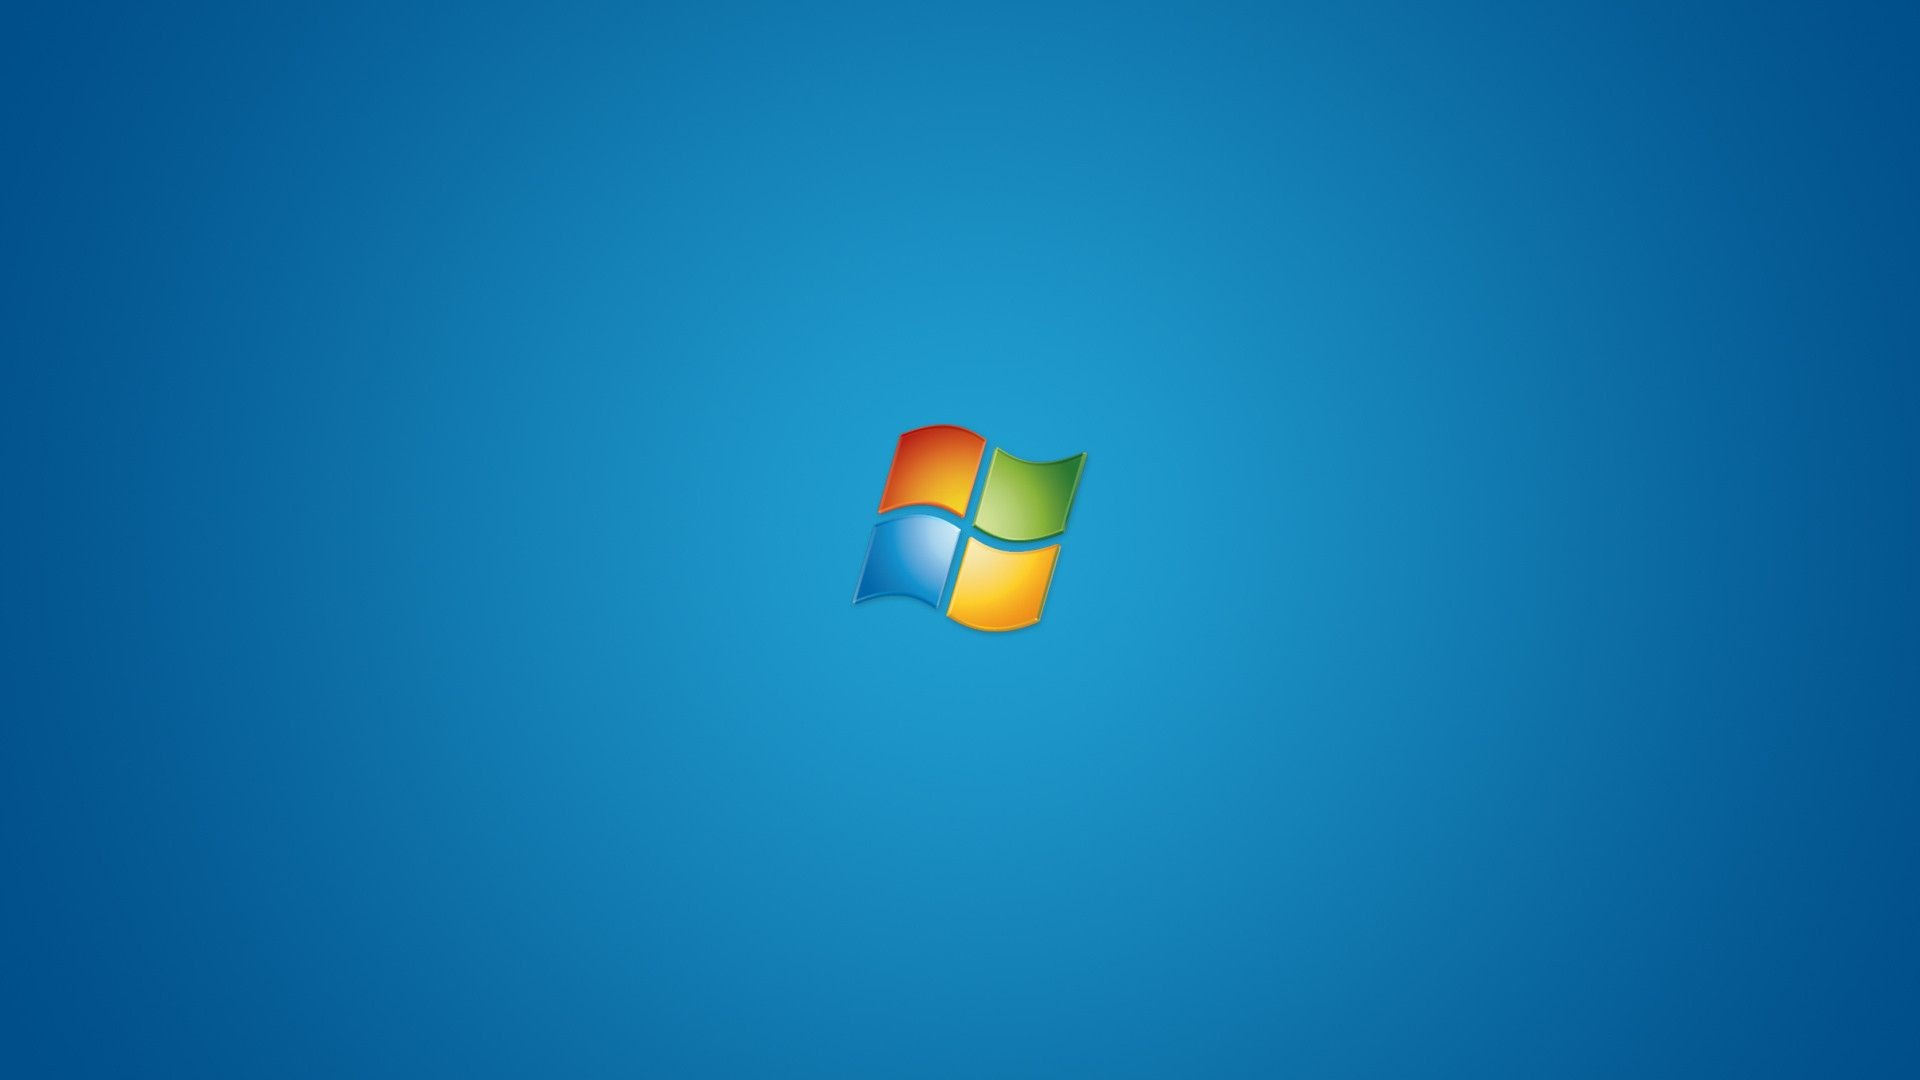 71 microsoft desktop backgrounds download free awesome hd